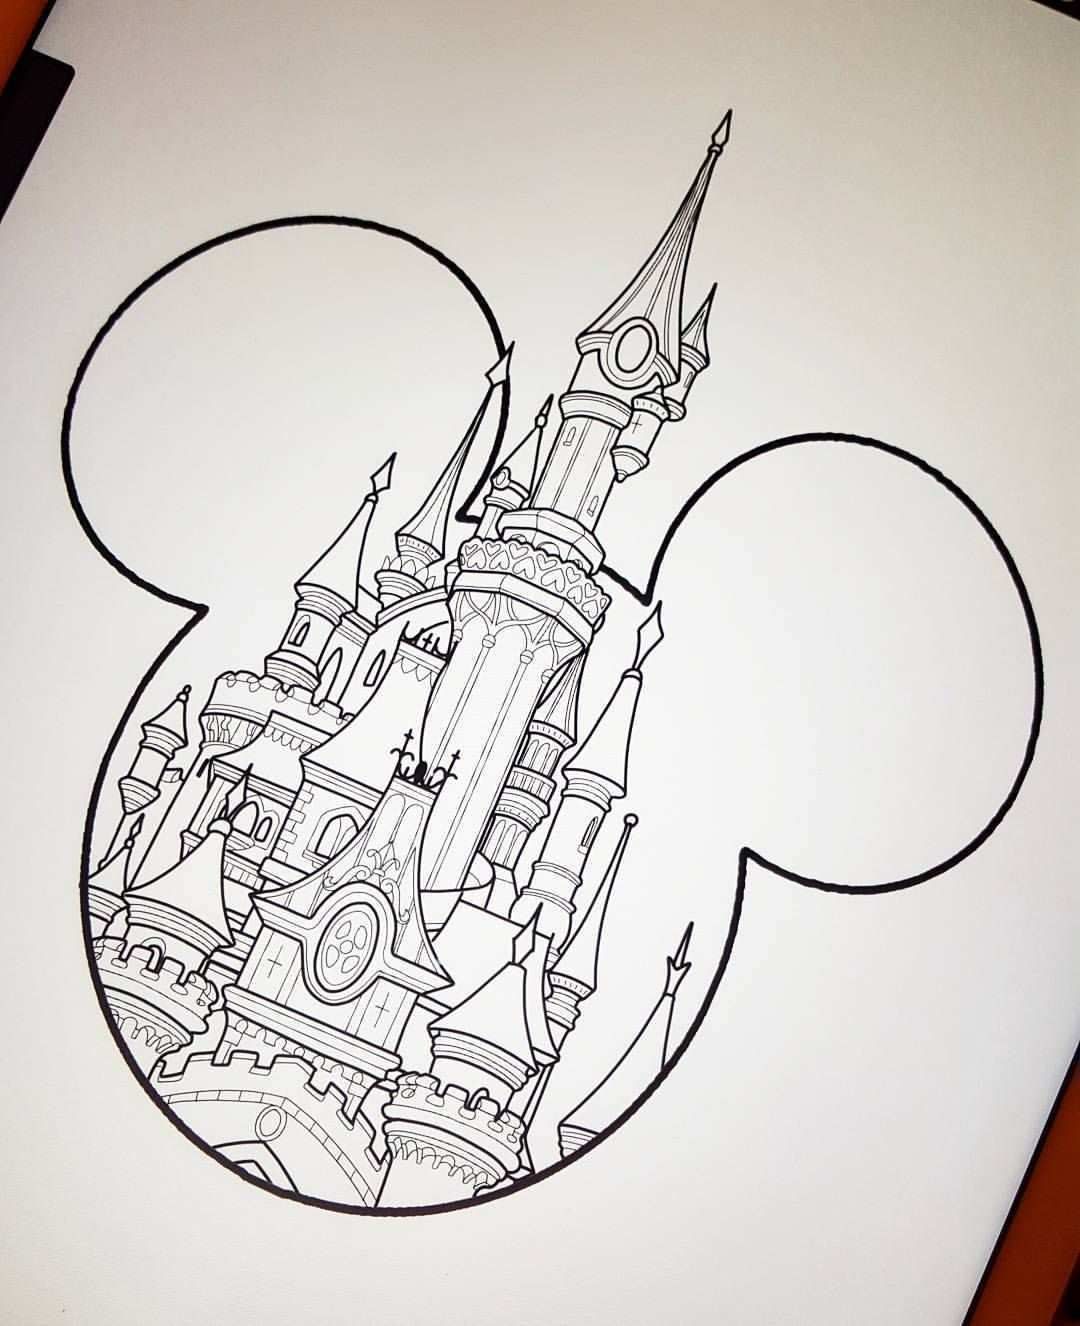 March Disney Deal Castle Type 2 120 To Book This Design Email Prettygrotesquetattoosuk Gmail Com Tattoos Disney Castle Tattoo Disney Drawings Disney Tattoos